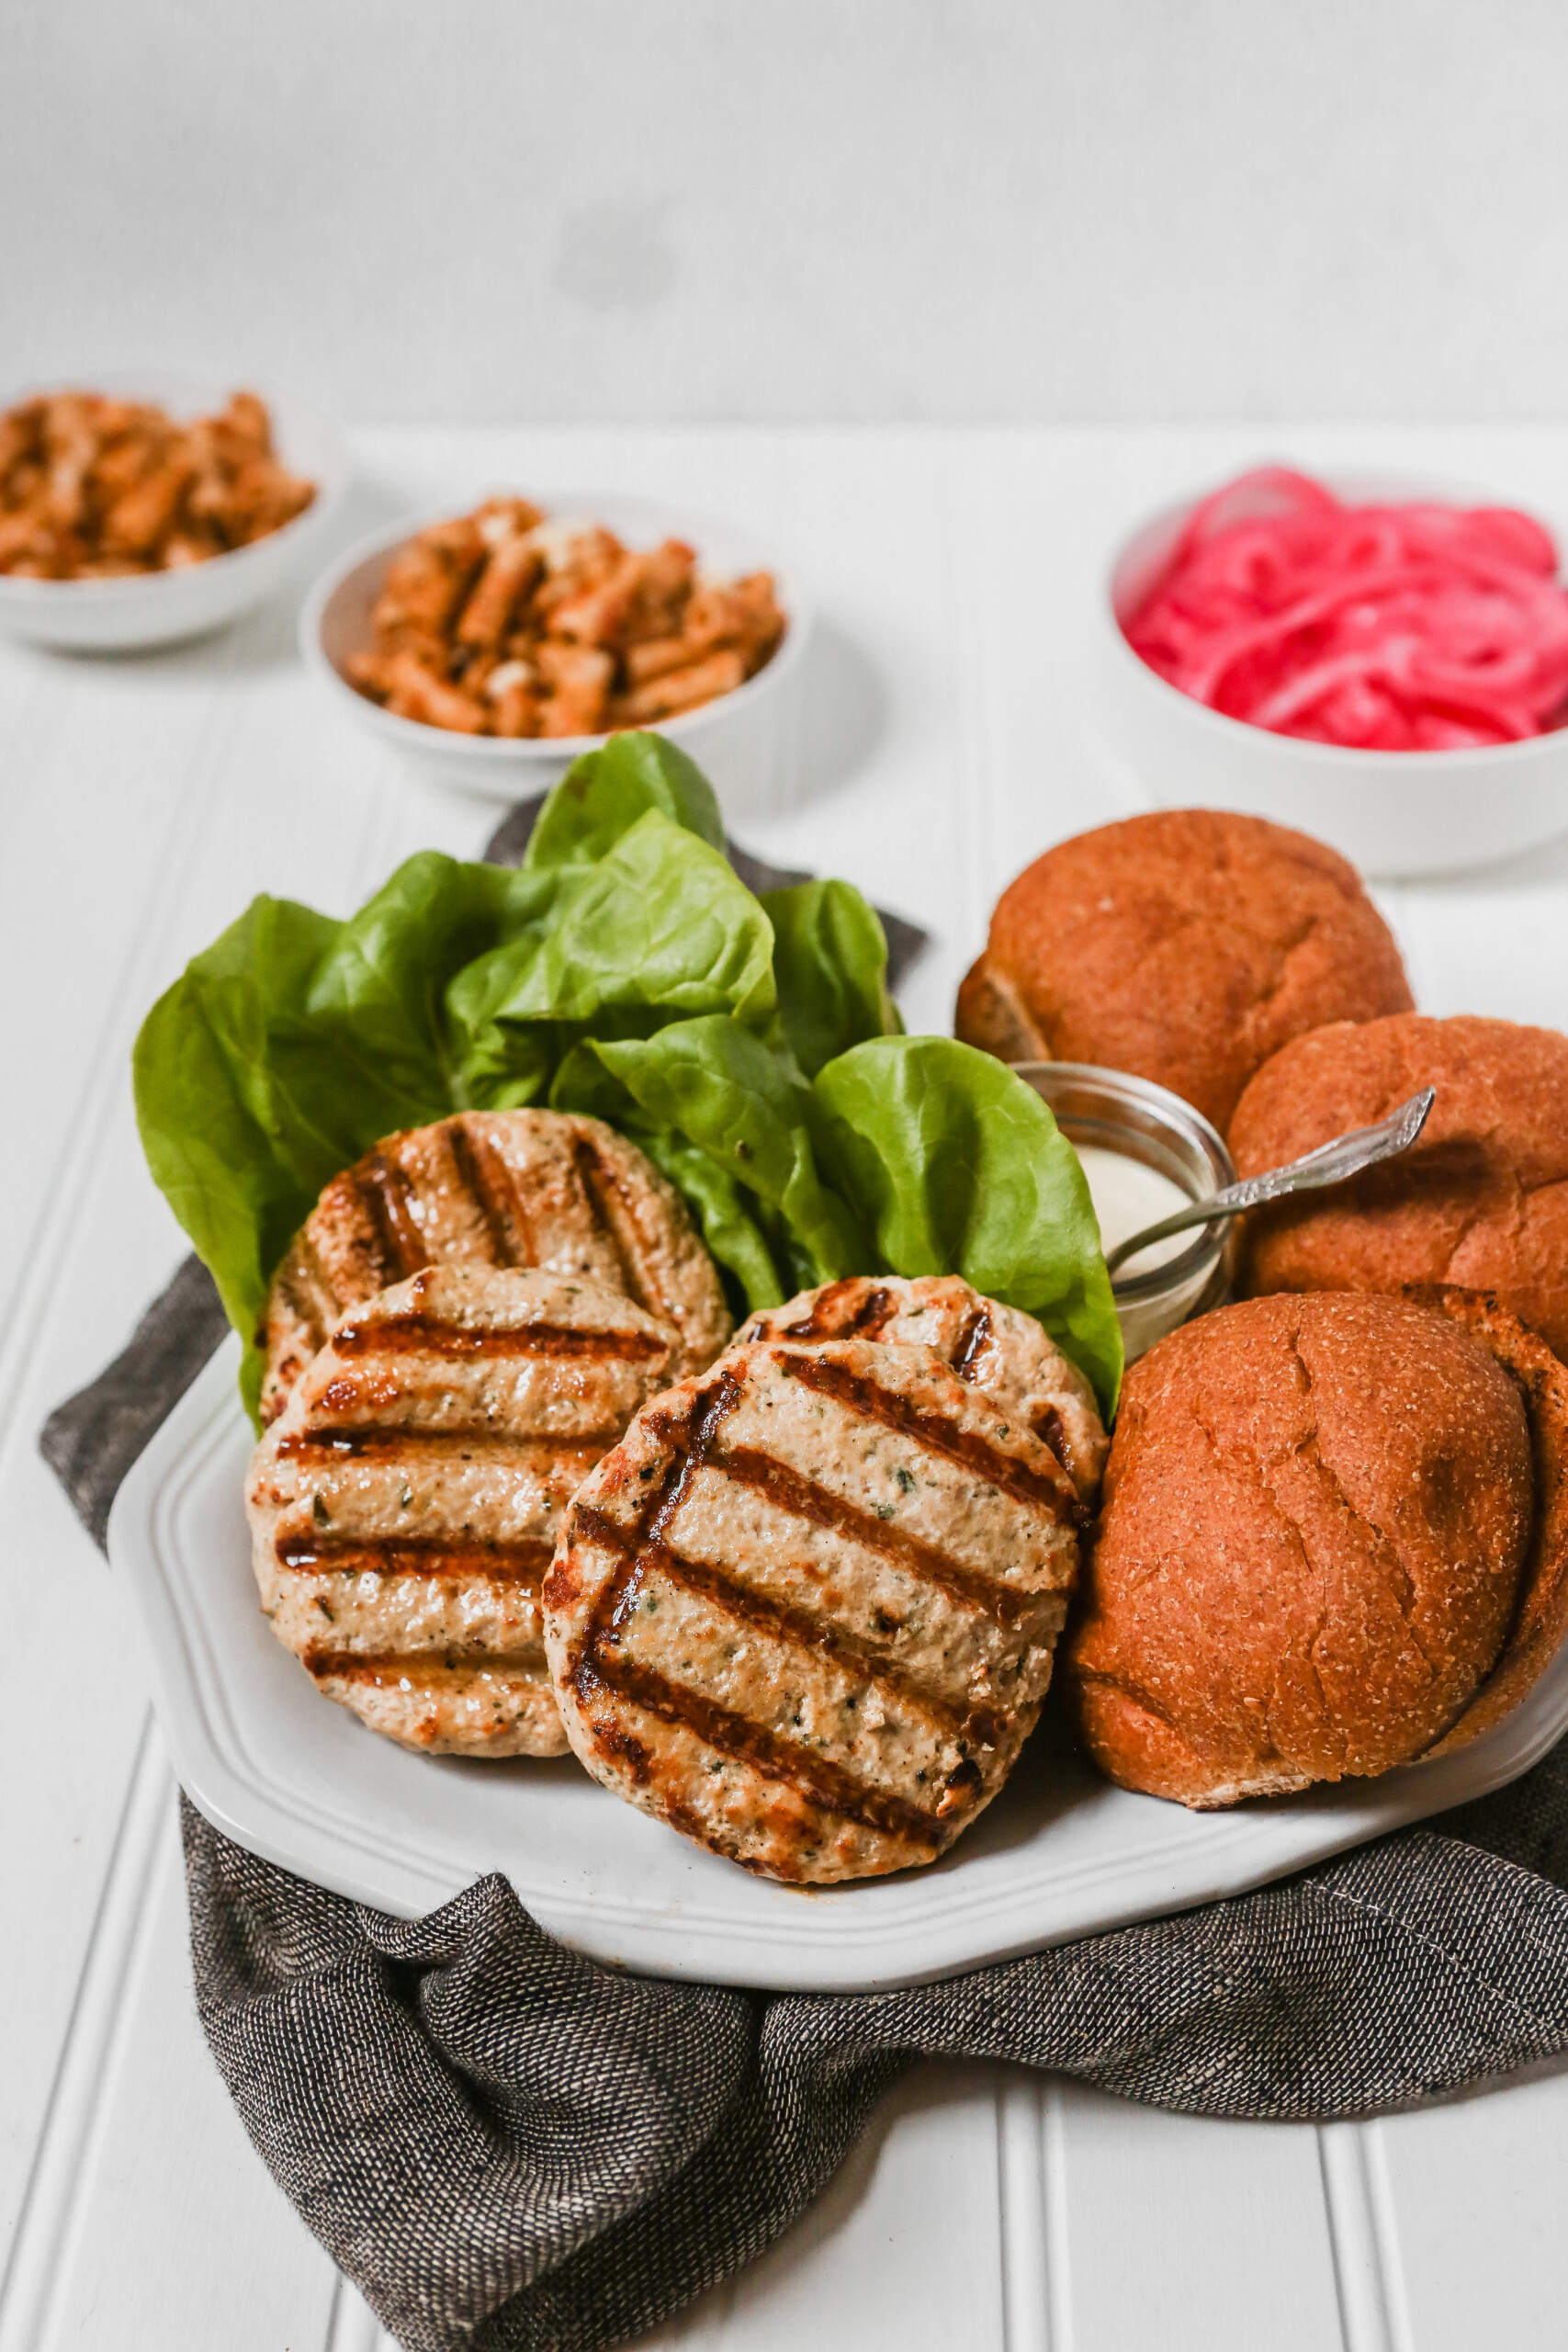 Photograph of turkey burger with steak knife stuck through the top